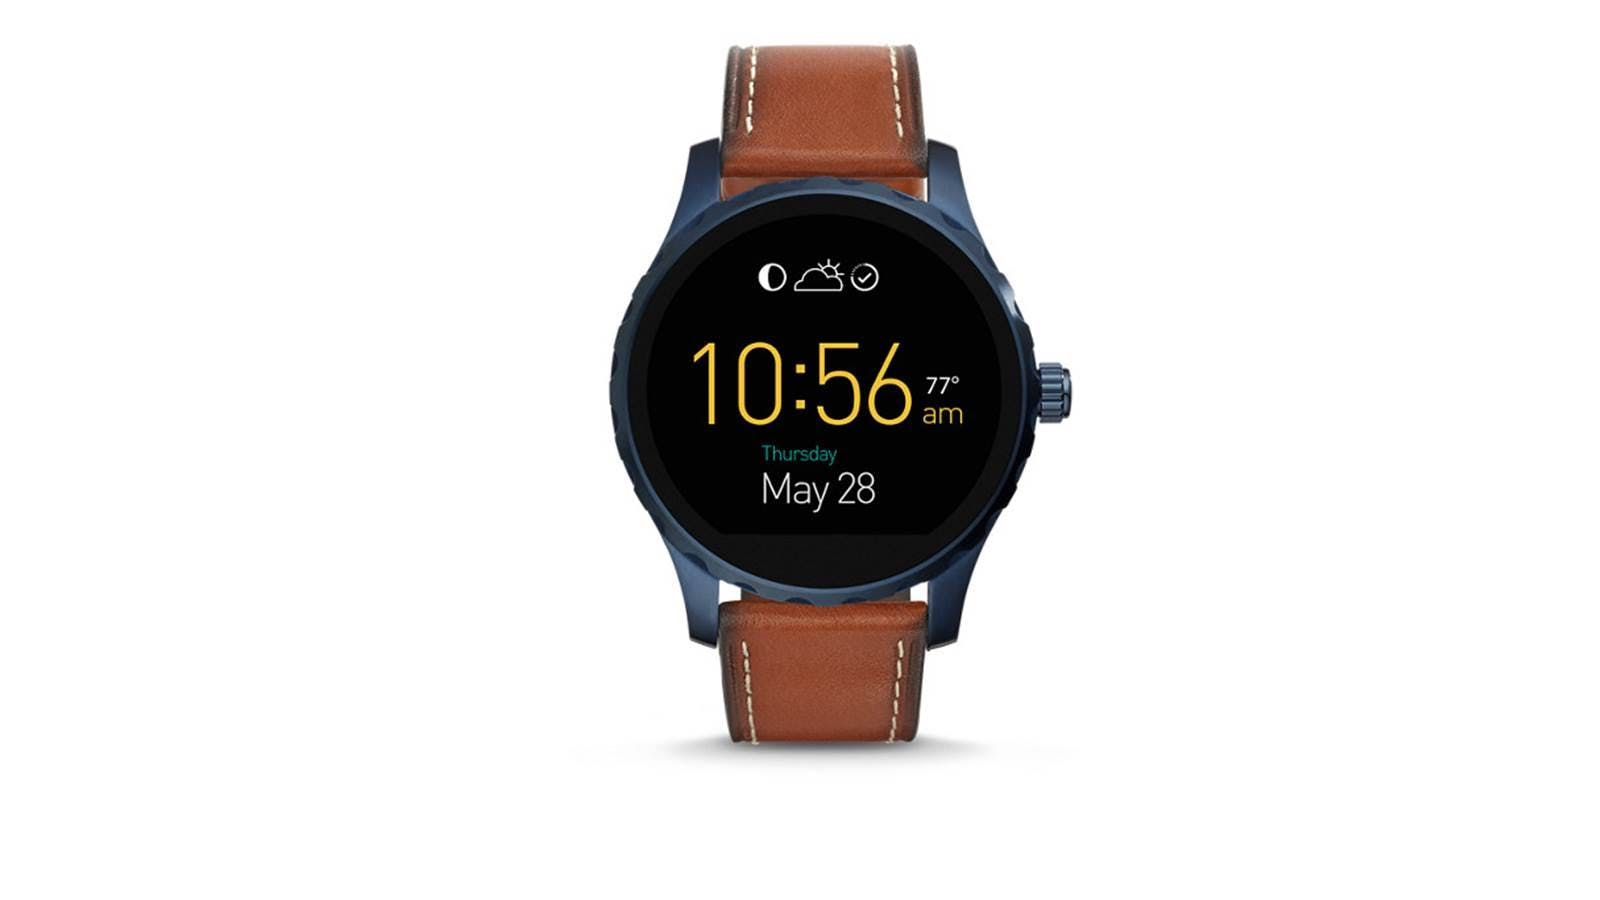 2fcdcb8ead4f Fossil Q Marshal TouchScreen Leather Smartwatch - Choco